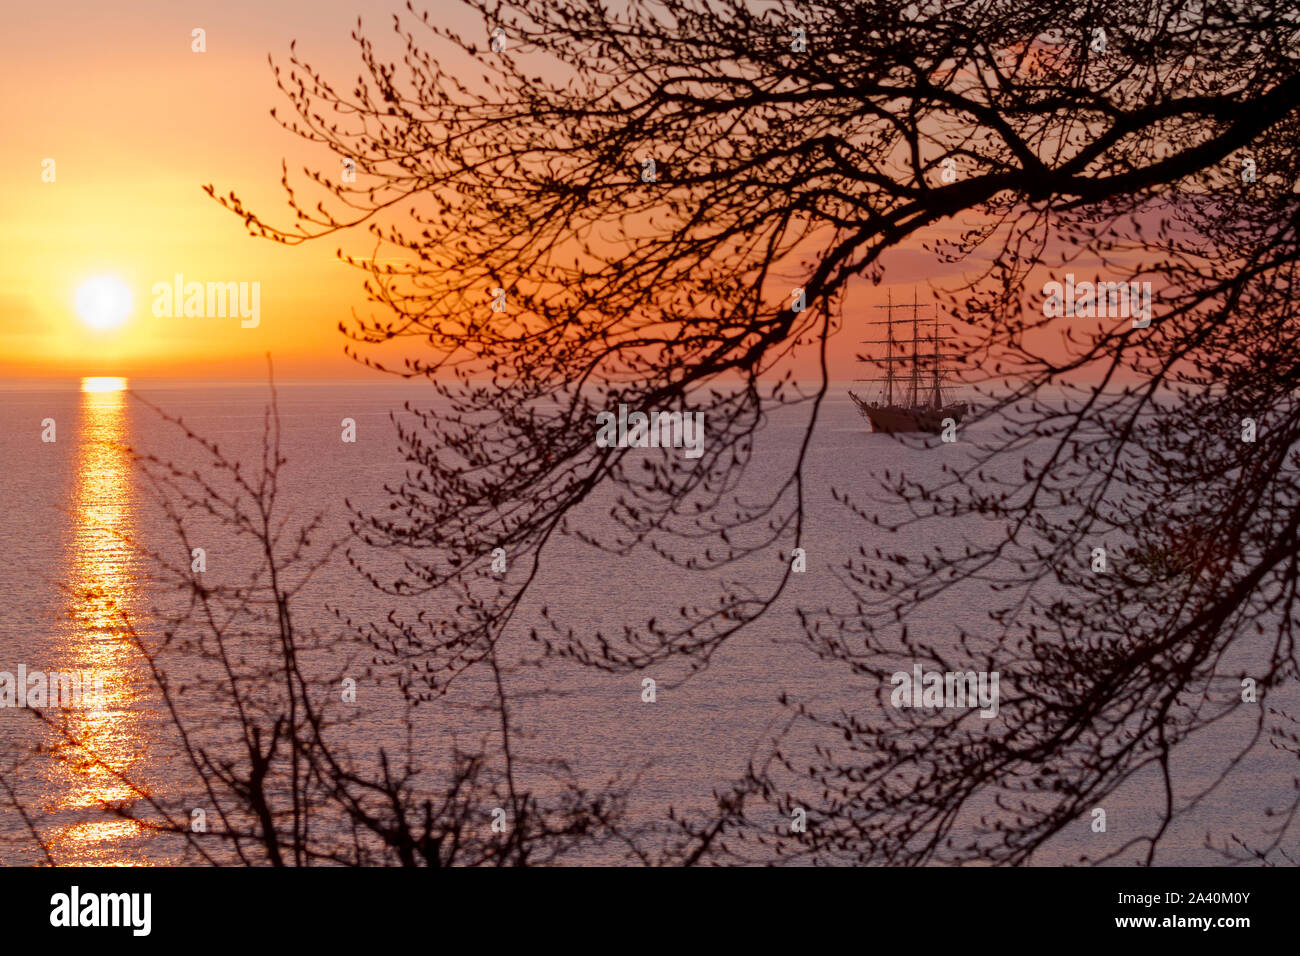 Georg Stage, a three-masted full-rigged Danish training tall ship in sunrise in the Sound in Denmark. A spring morning seen through branches and twigs Stock Photo